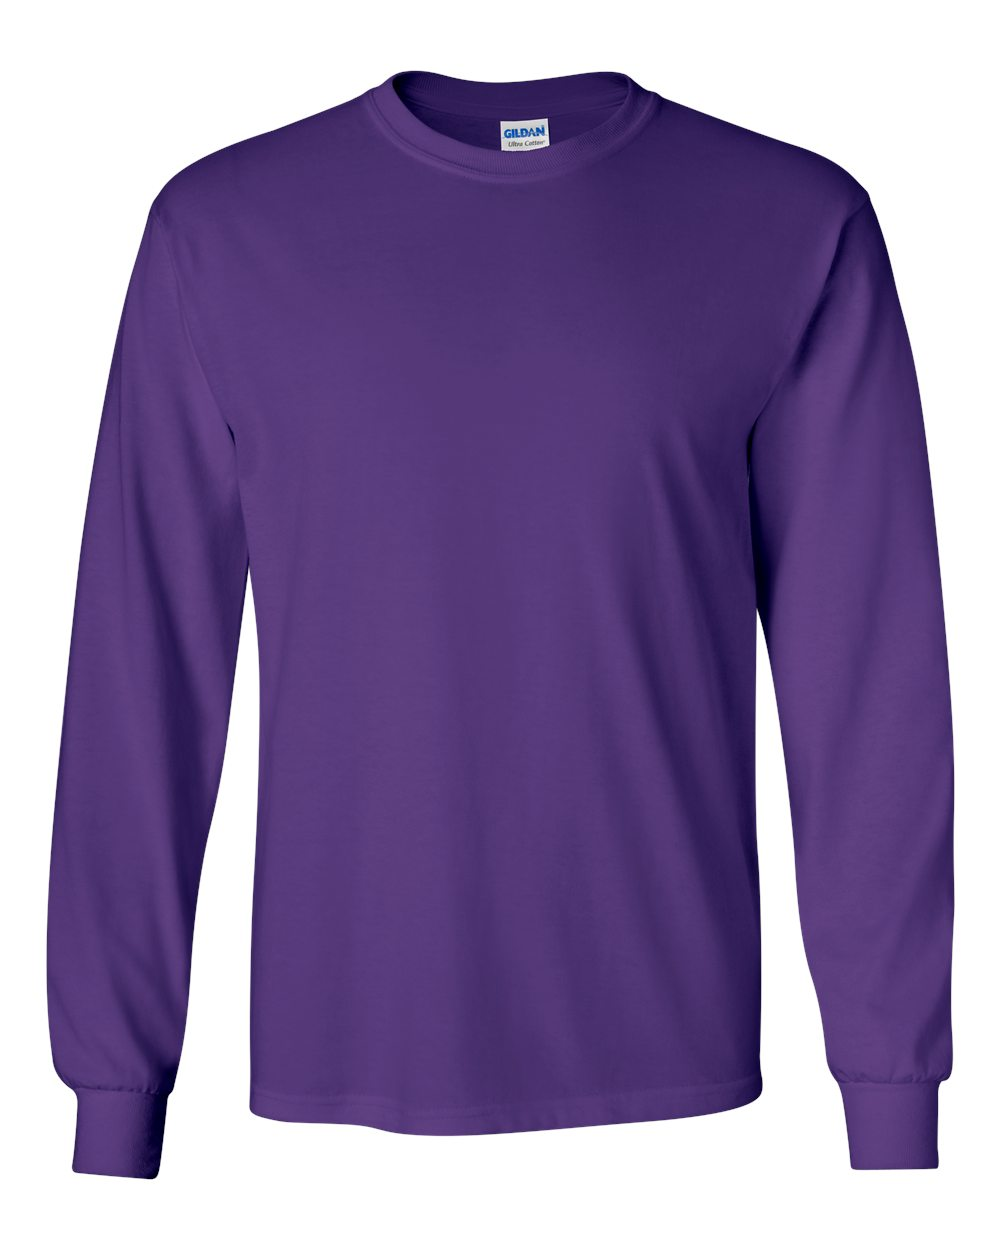 Gildan_2400_Purple_Front_High.jpg